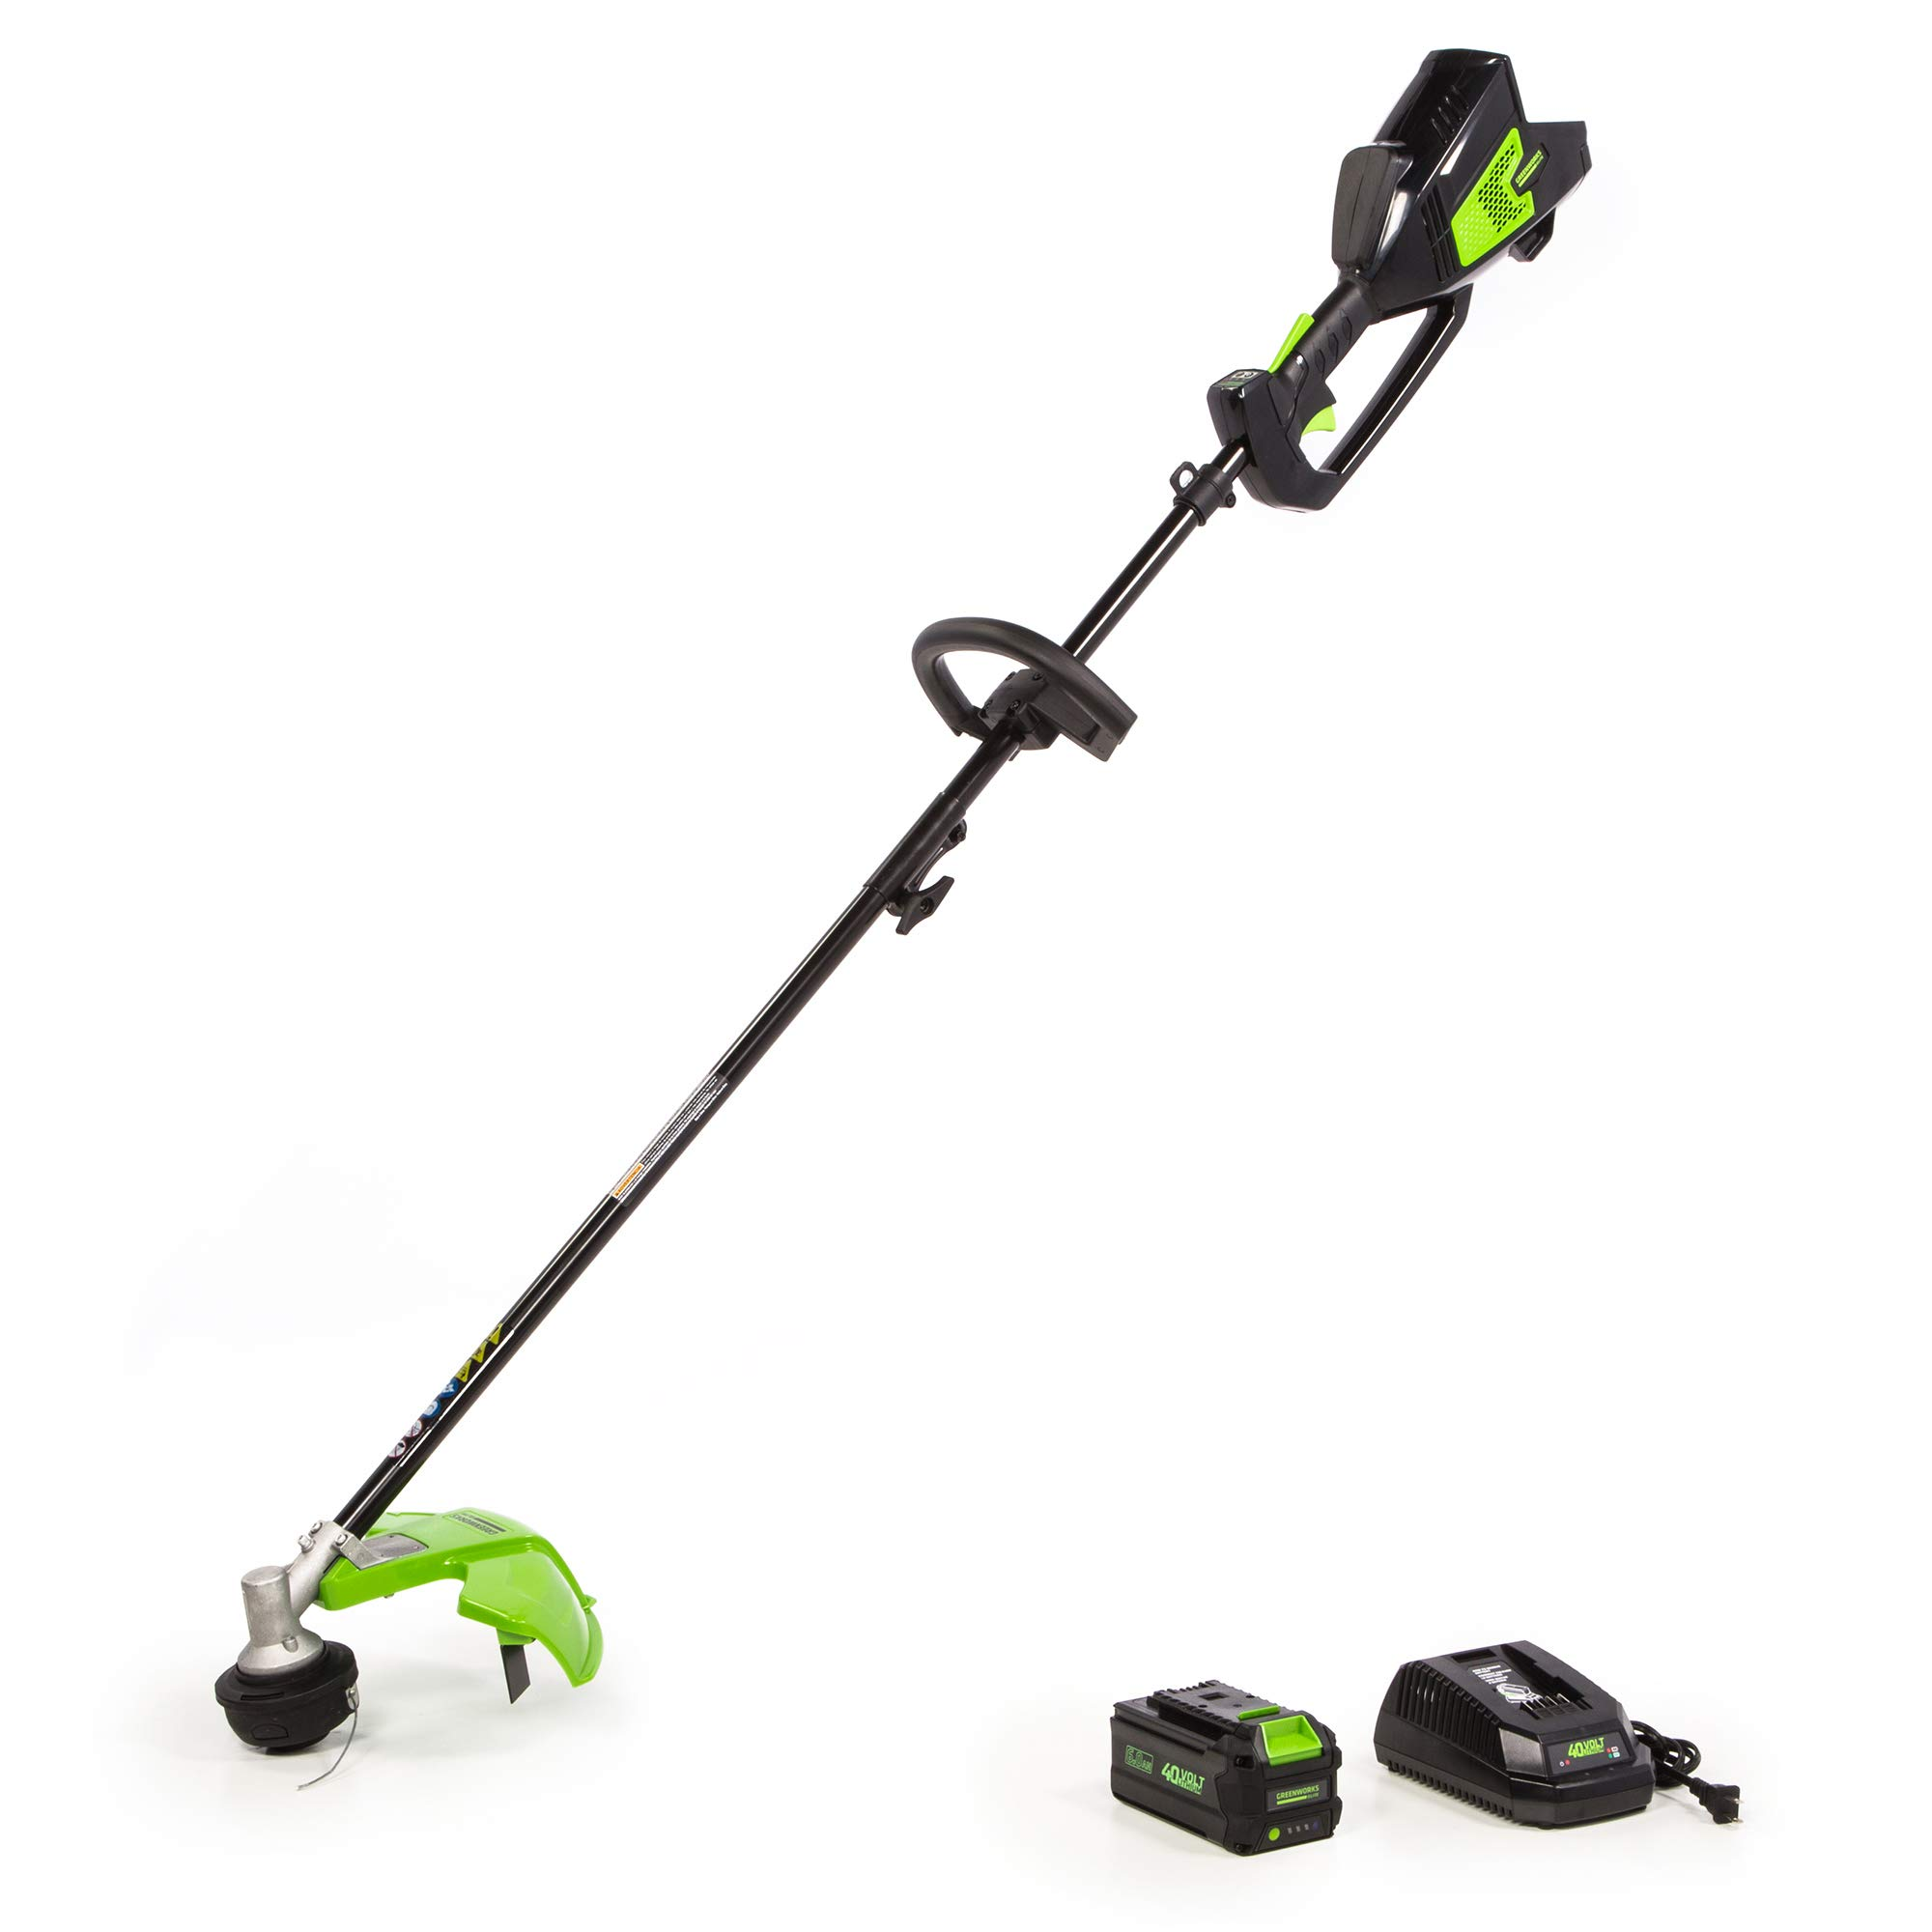 Greenworks 14-Inch 40V (Attachment Capable) String Trimmer, 6.0Ah Battery and Charger Included ST-140-A